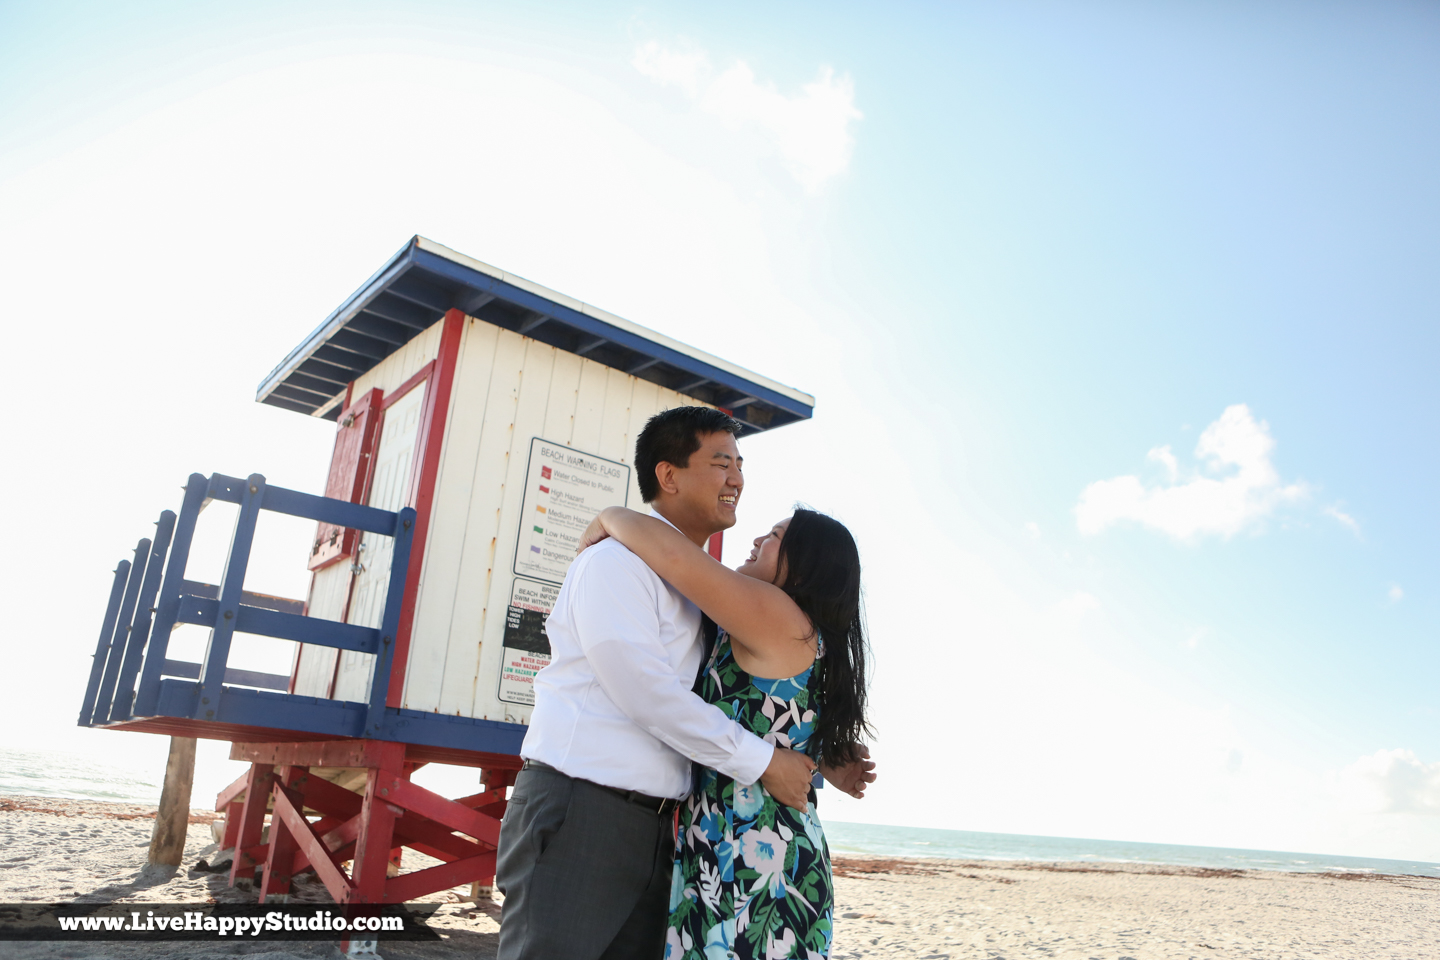 www.livehappystudio.com-engagement-wedding-photographer-orlando-fun-candid-portrait-cocoa-beach-6.jpg